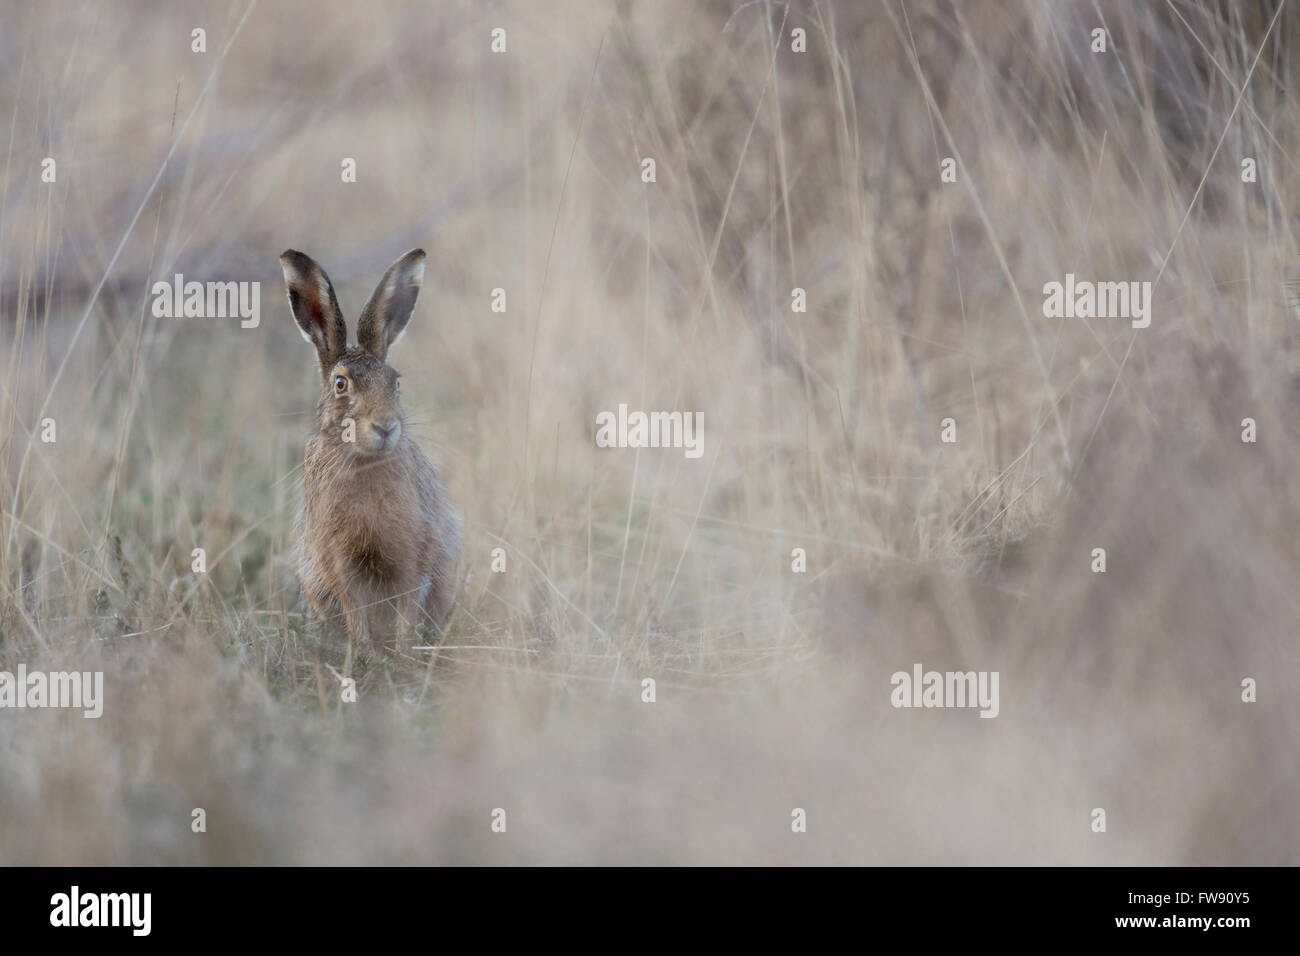 Brown Hare / European Hare / Feldhase (Lepus europaeus) sits hidden in natural high grass environment. - Stock Image